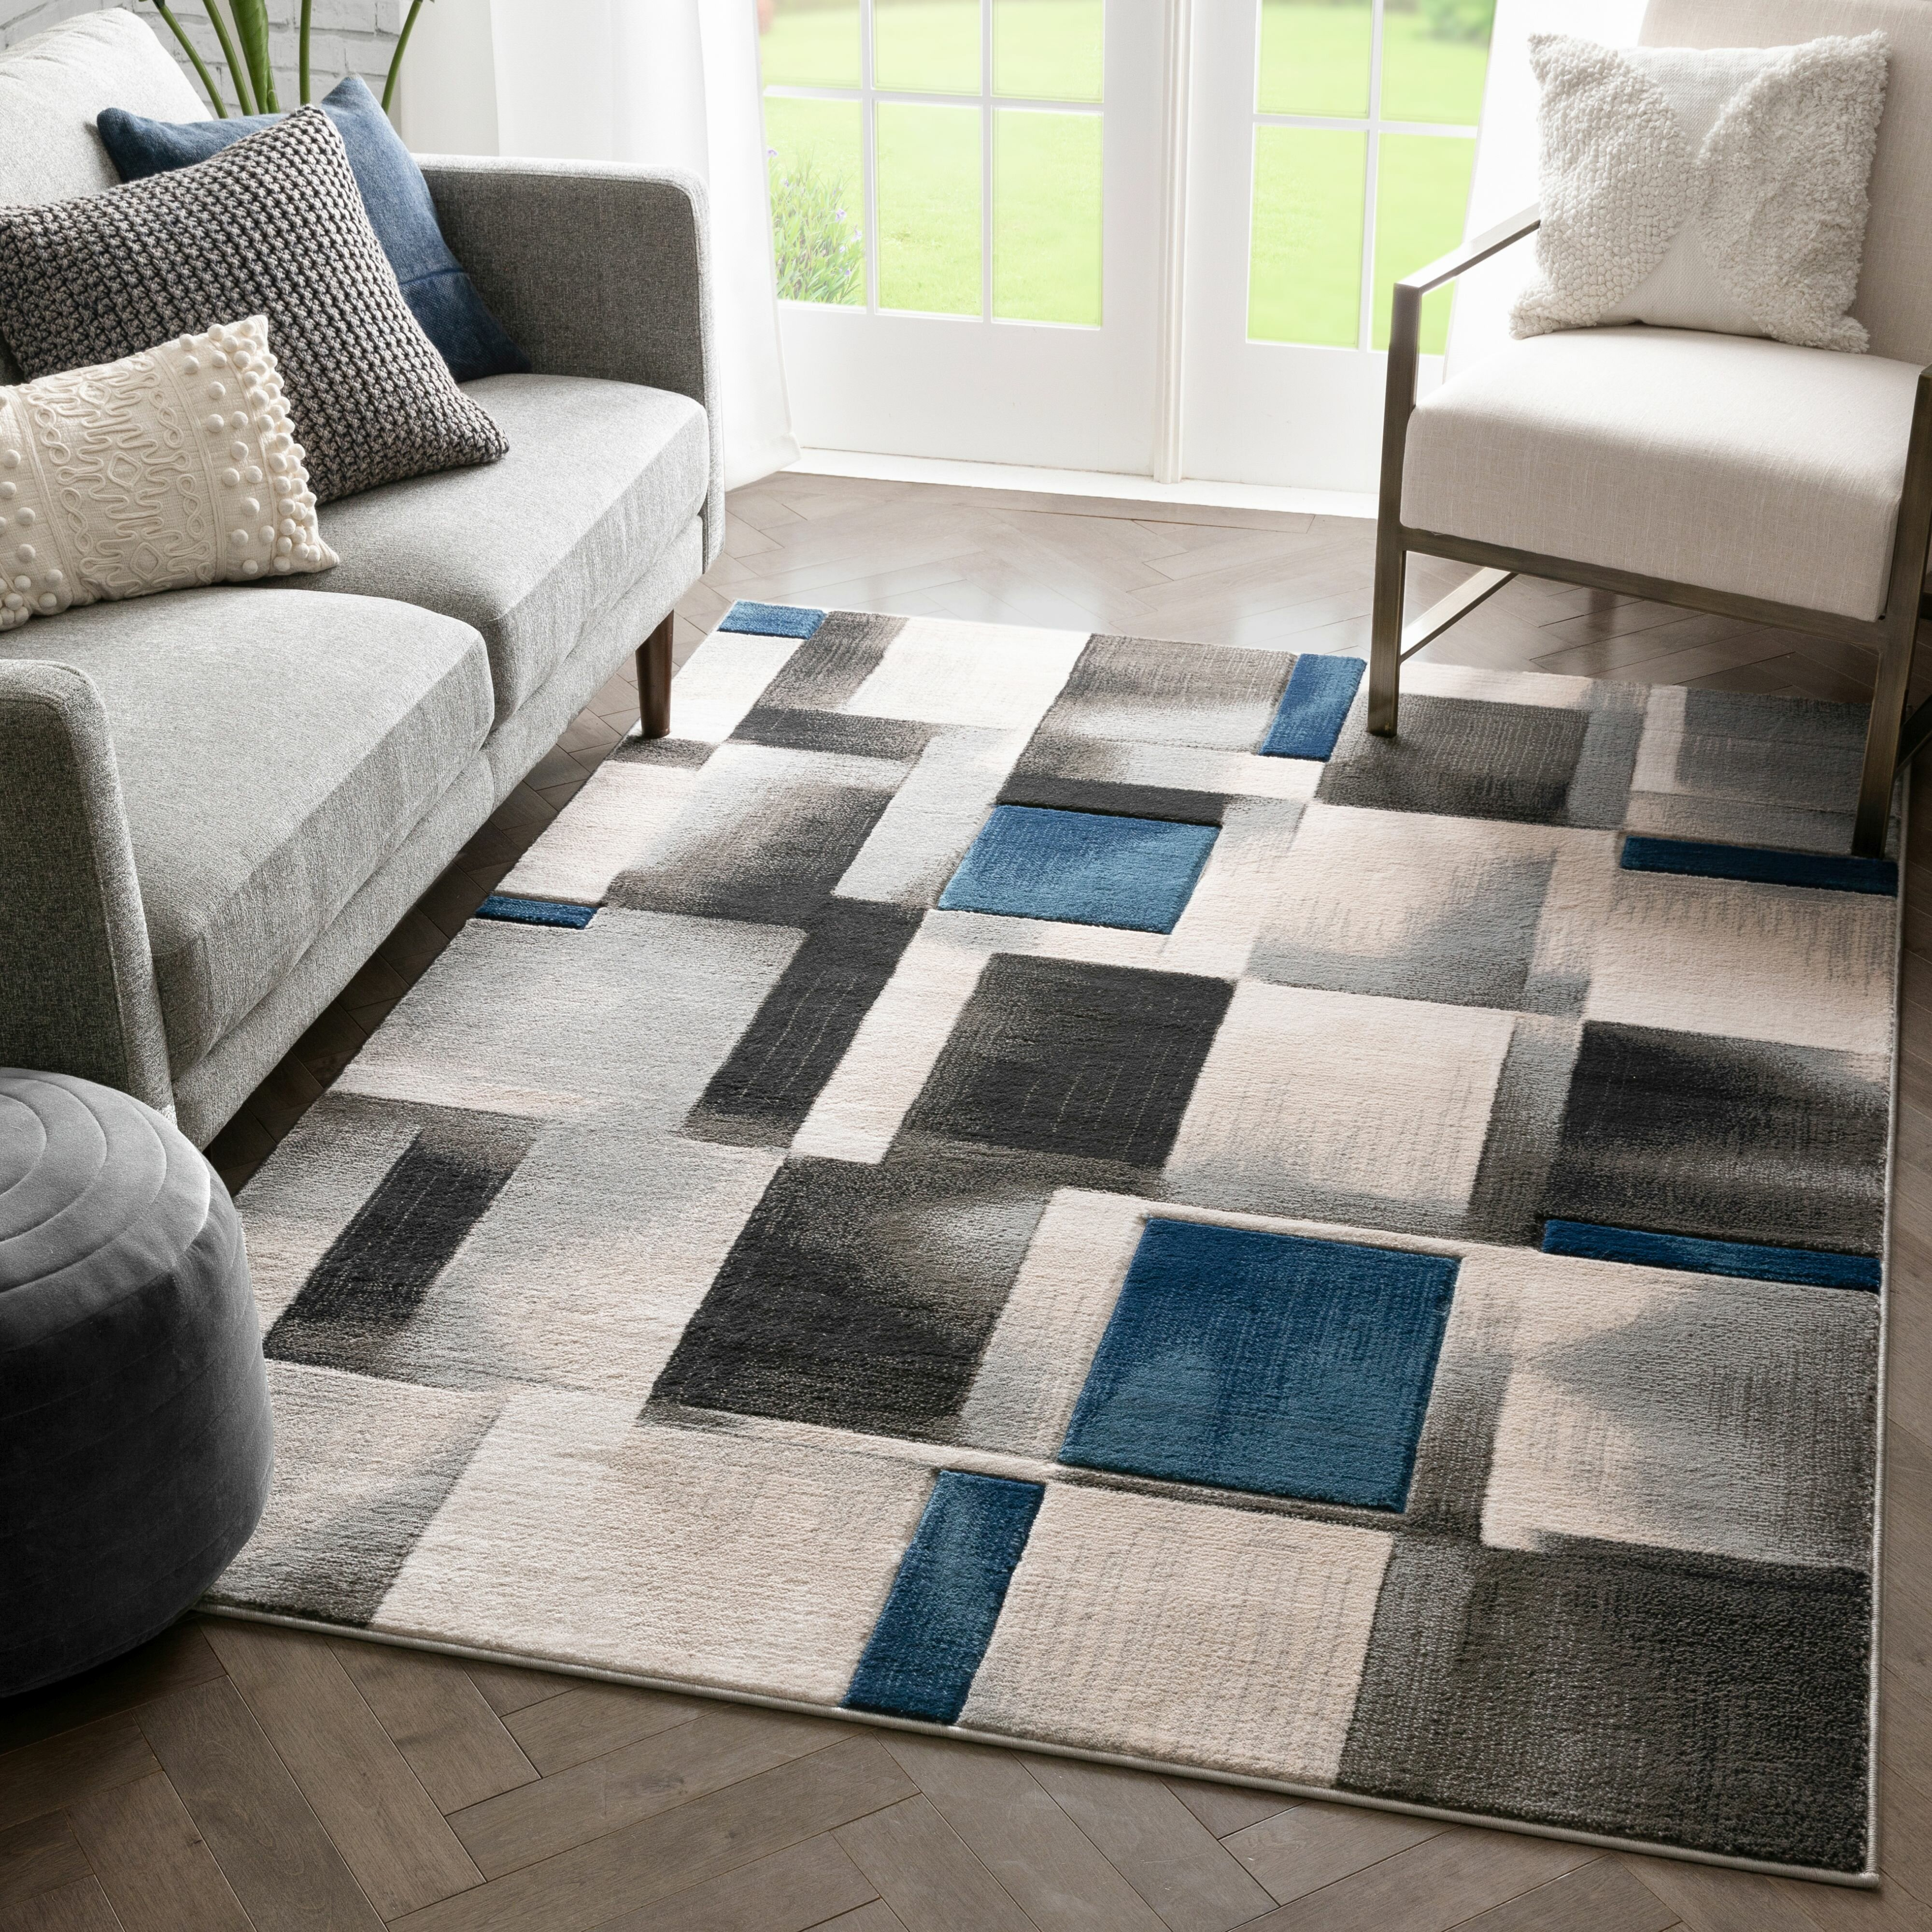 Well Woven Louisa Power Loom Blue Gray Black Rug Reviews Wayfair